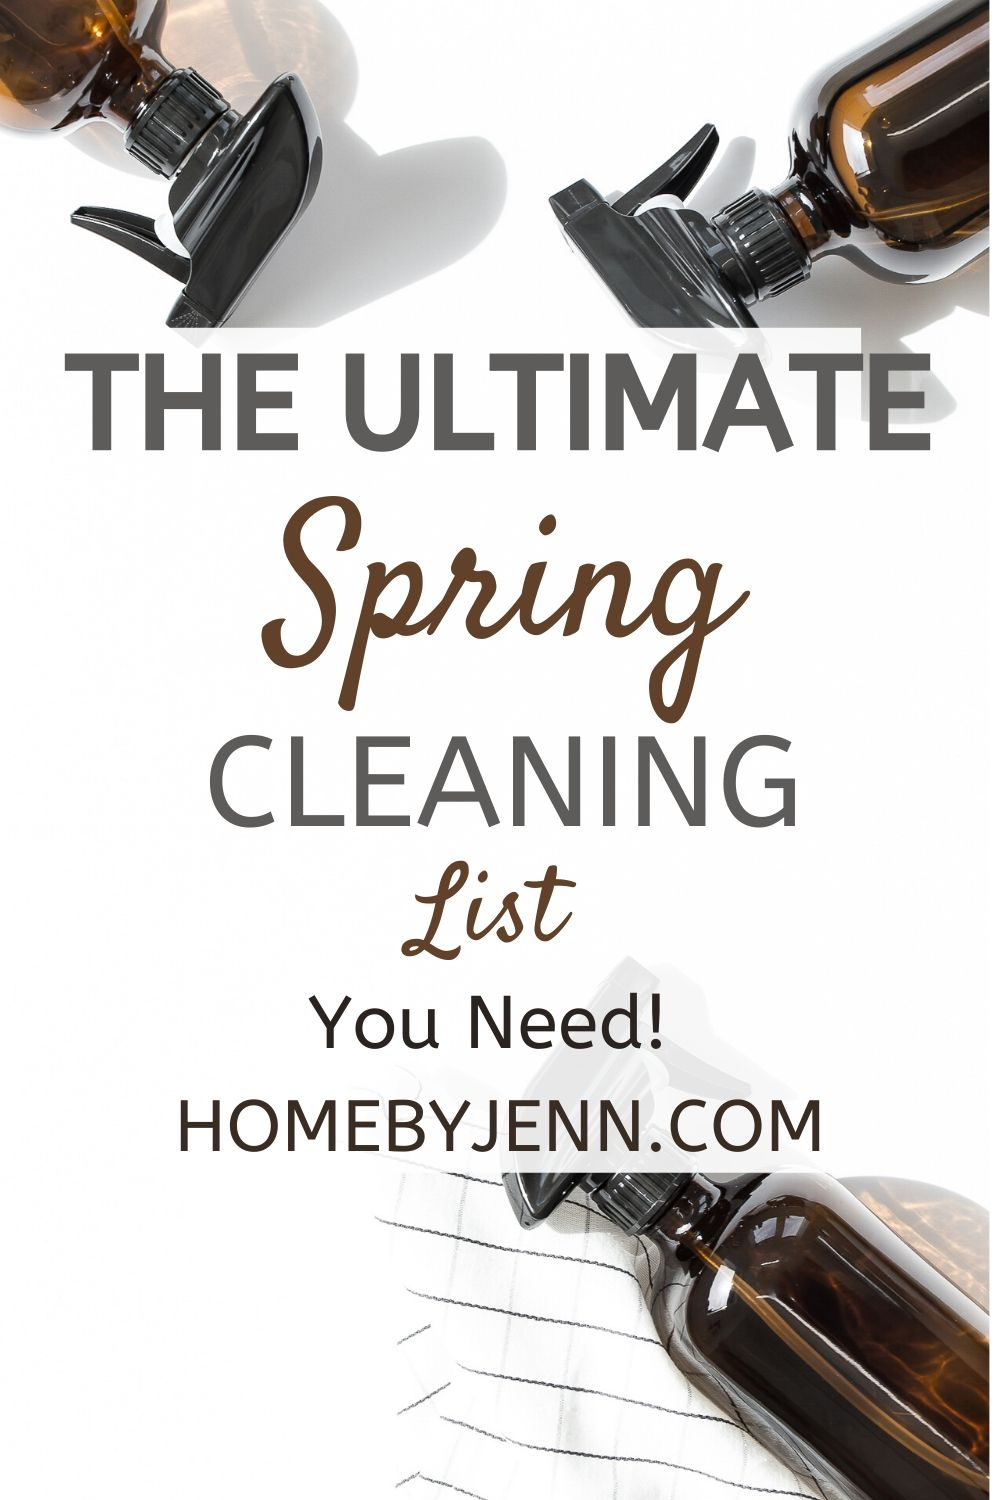 Get ahead of the spring cleaning with the ultimate spring cleaning list. Grab the free spring cleaning checklist too to help you get your house clean this spring. #springcleaning #cleaningtips #cleaninghacks #springcleaningtipsandtricks #cleaningtipsandtricks #springcleaninghacks #springcleaningtips via @homebyjenn